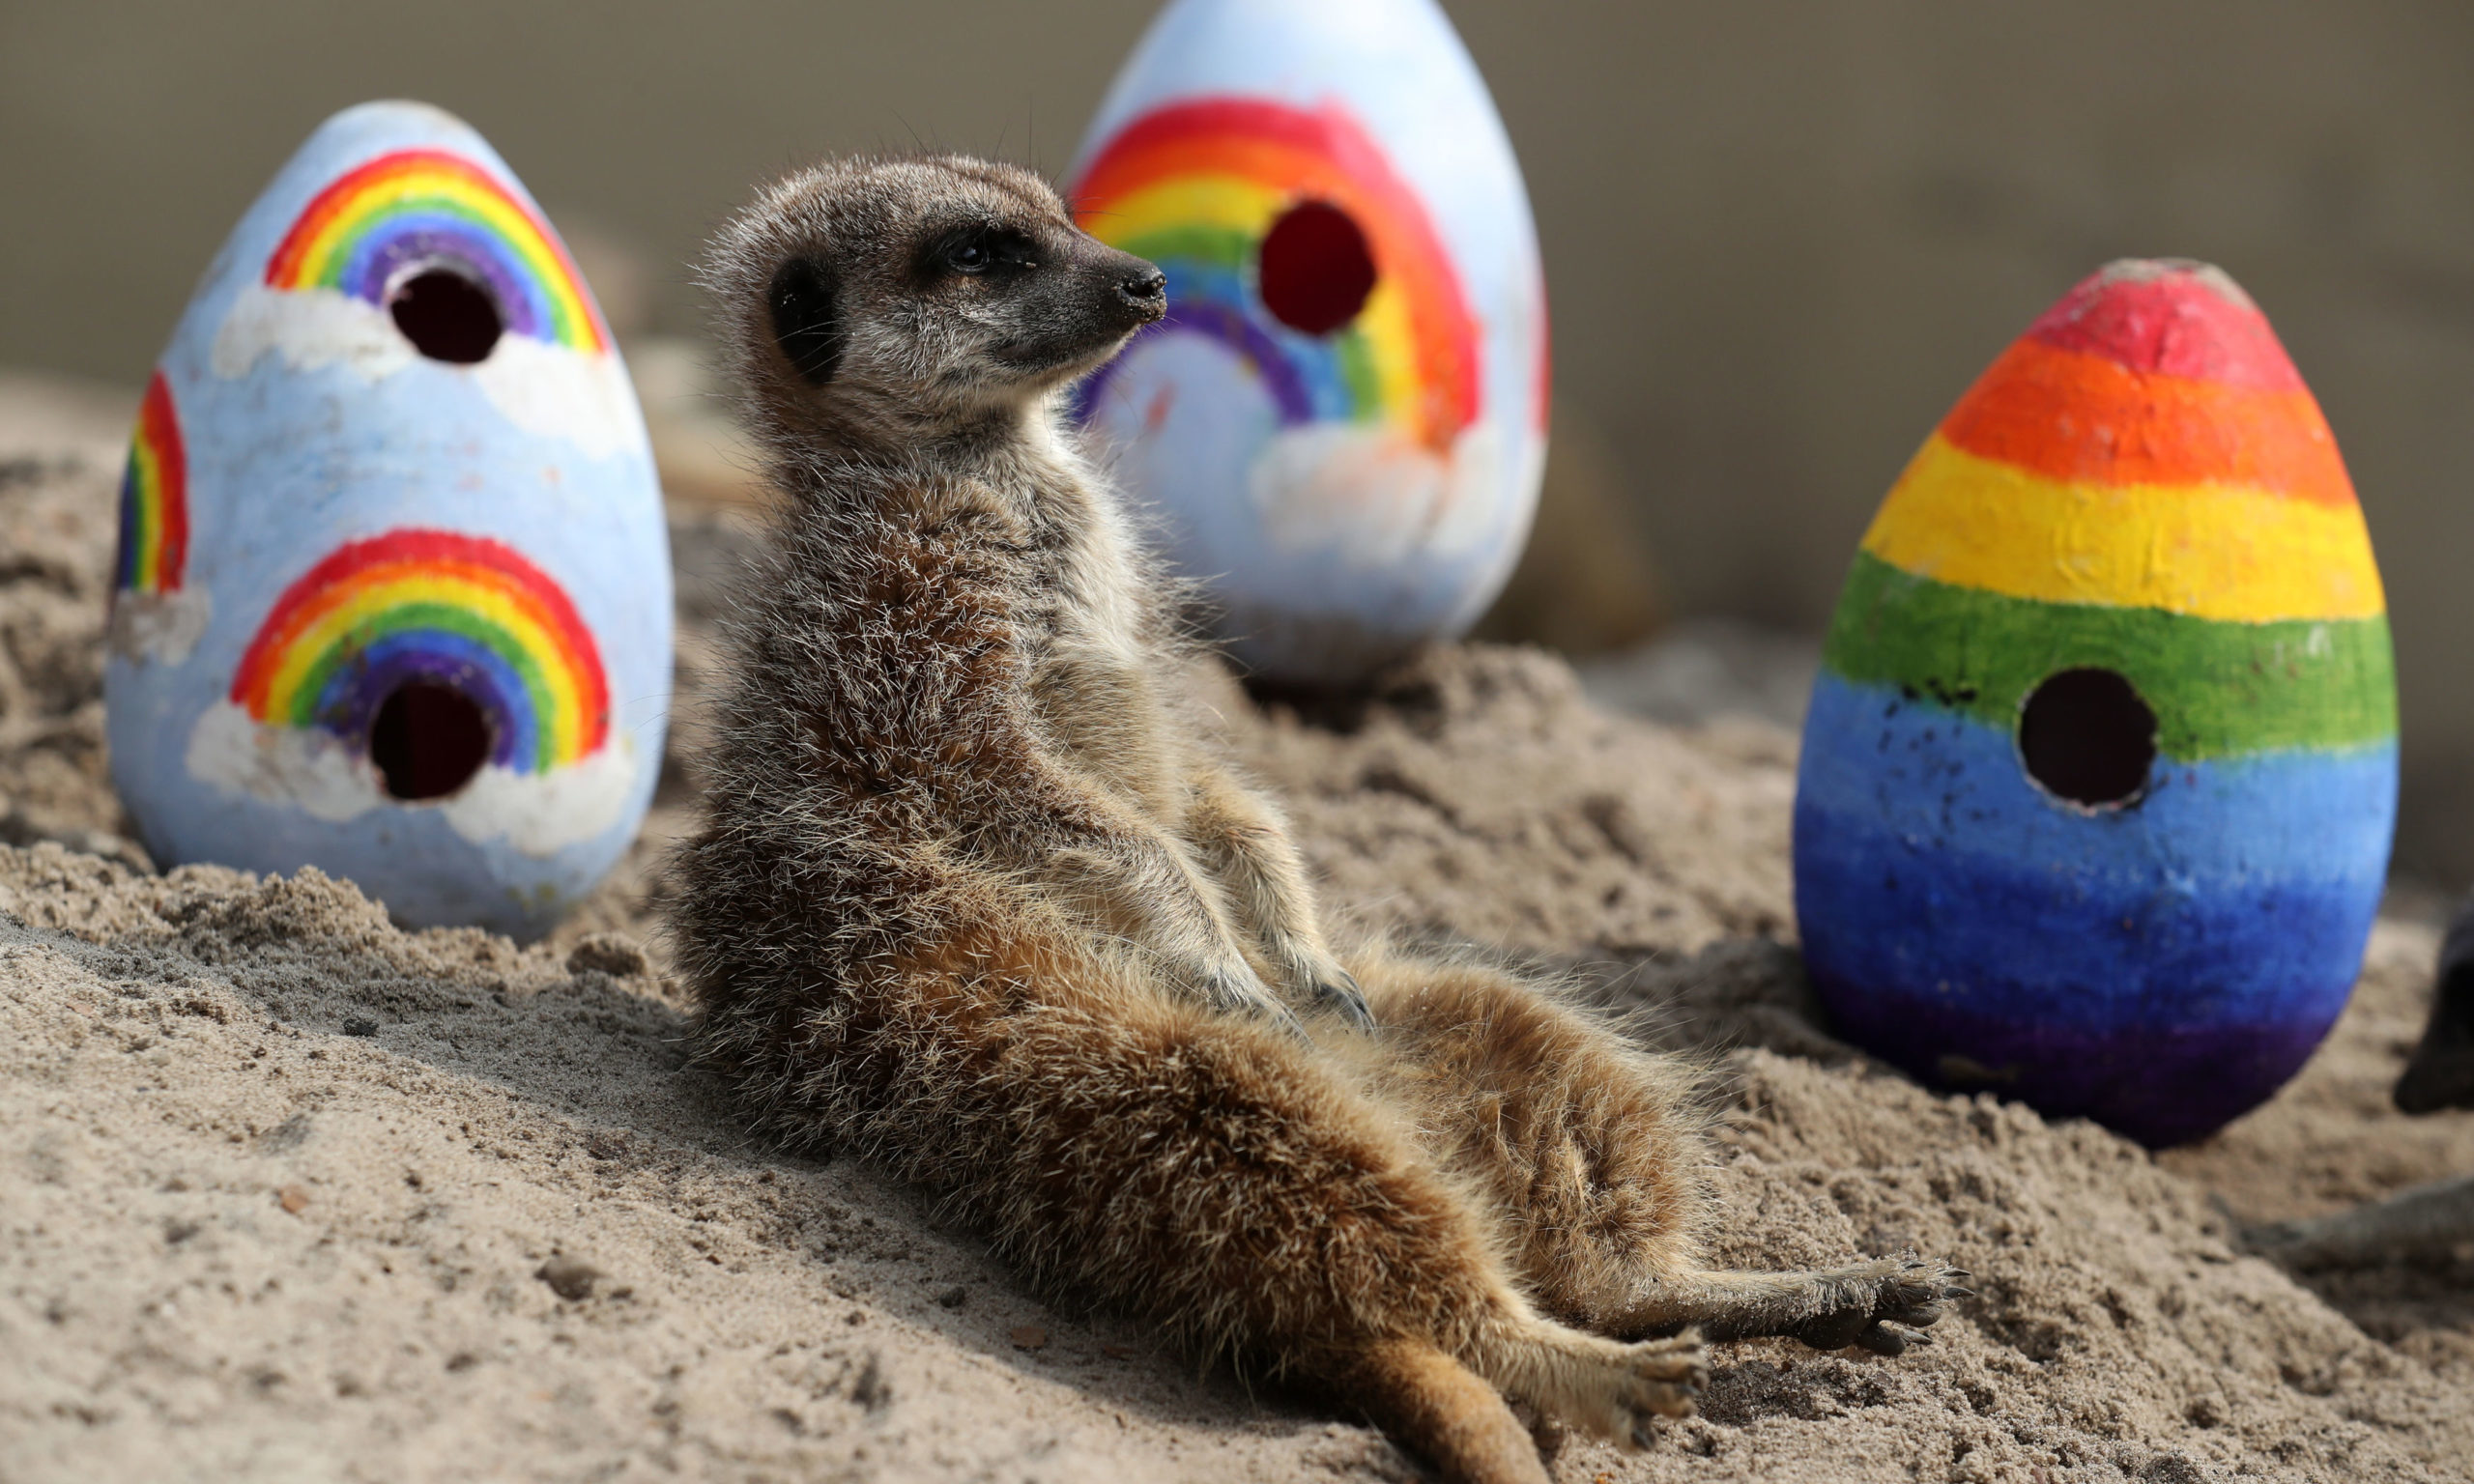 Staff at Blair Drummond Safari Park give their meerkats  rainbow coloured Easter eggs filled with enrichments.  The park is closed to the public at the moment as the UK continues in lockdown to help curb the spread of the coronavirus. PA Photo. Picture date: Friday April 10, 2020. See PA story HEALTH Coronavirus. Photo credit should read: Andrew Milligan/PA Wire